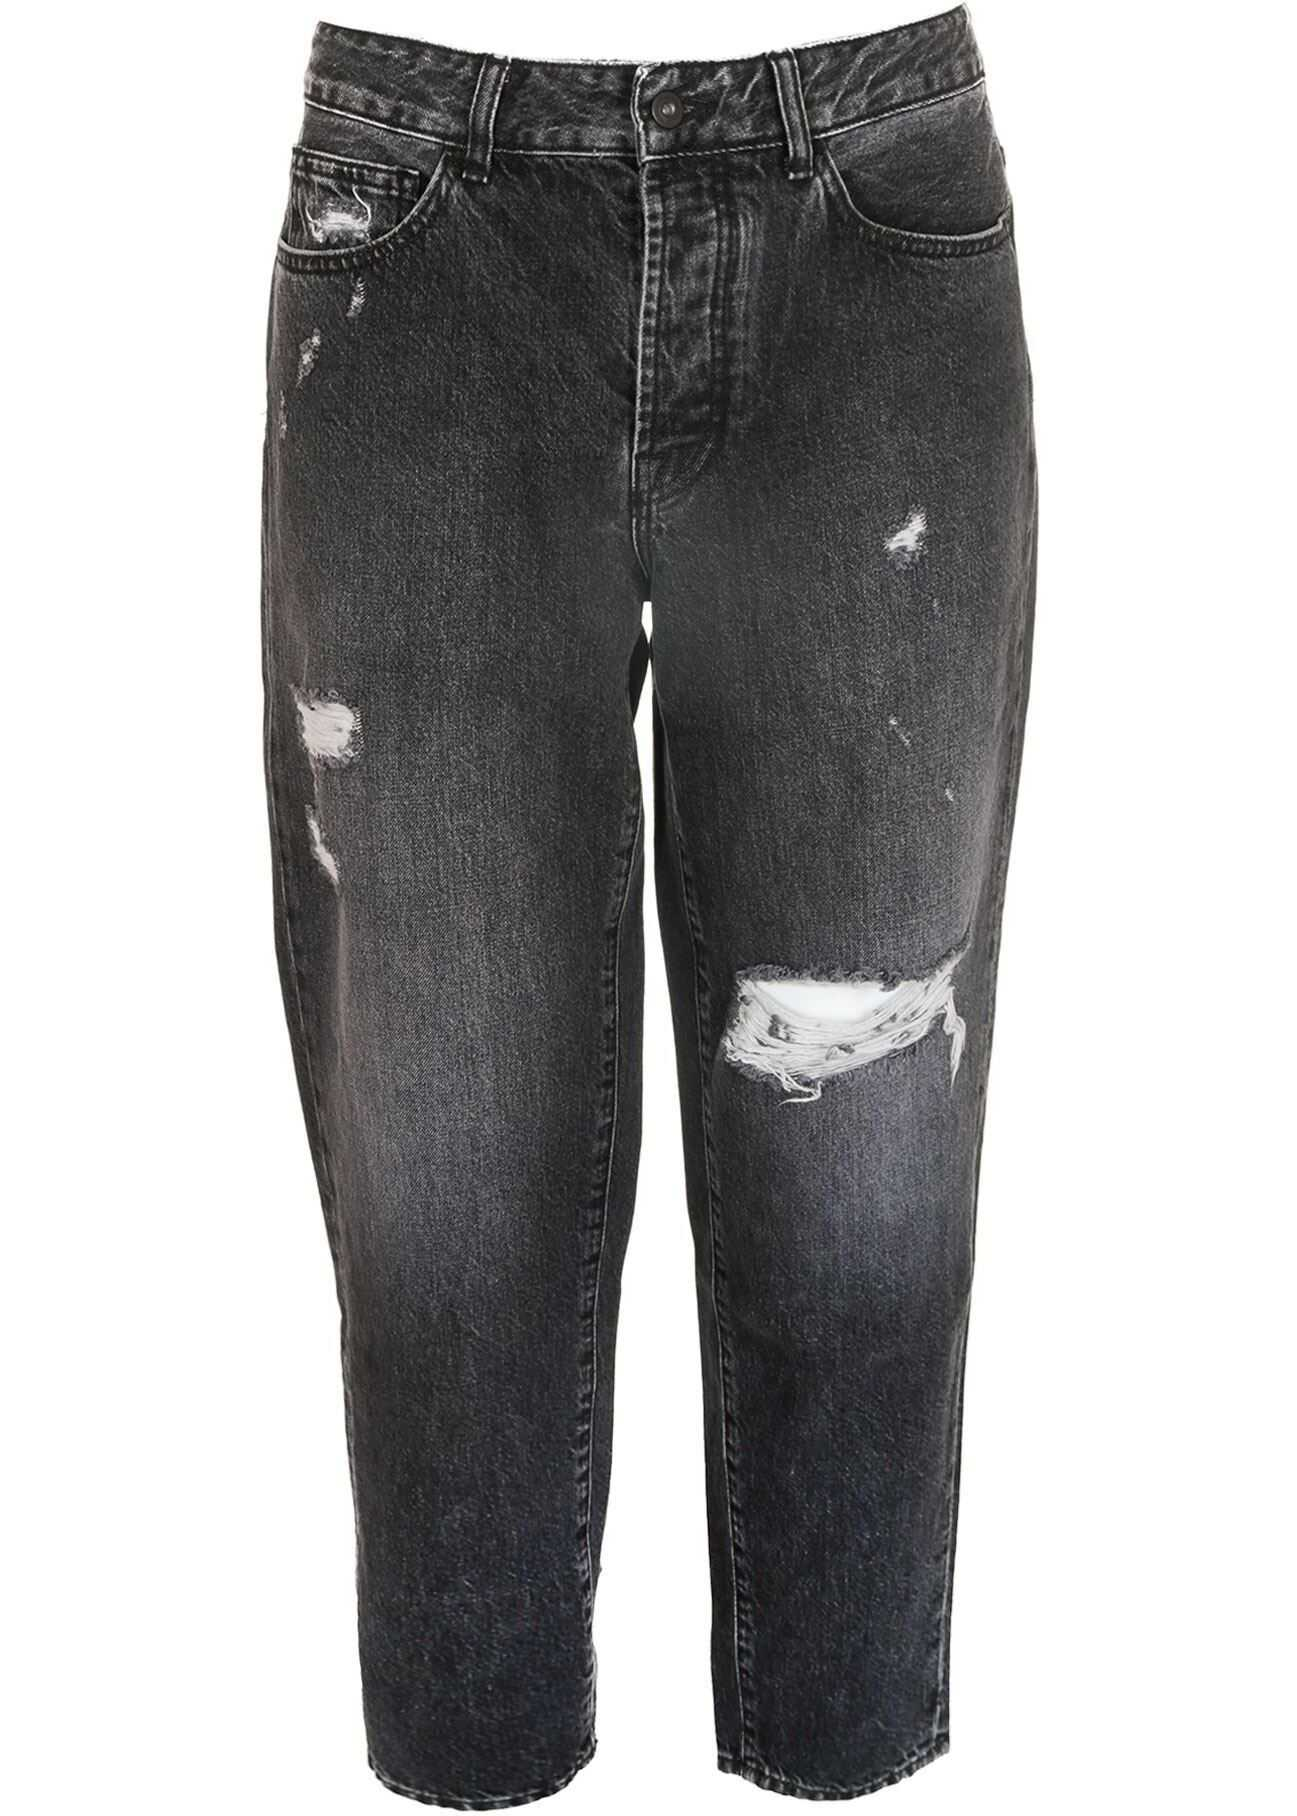 Marcelo Burlon Distress Vintage Carrot Jeans In Black Black imagine